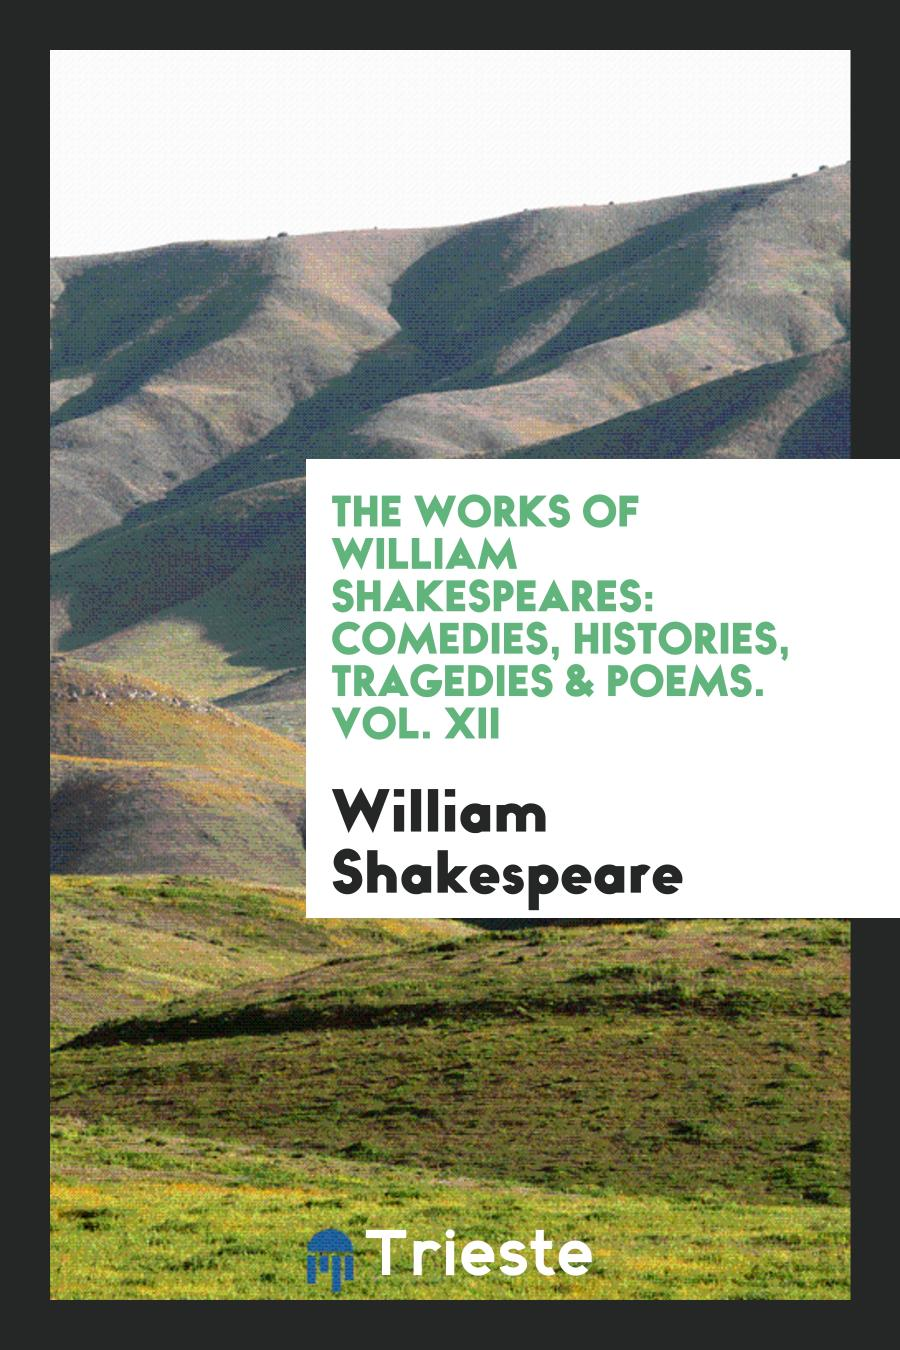 The Works of William Shakespeares: Comedies, Histories, Tragedies & Poems. Vol. XII